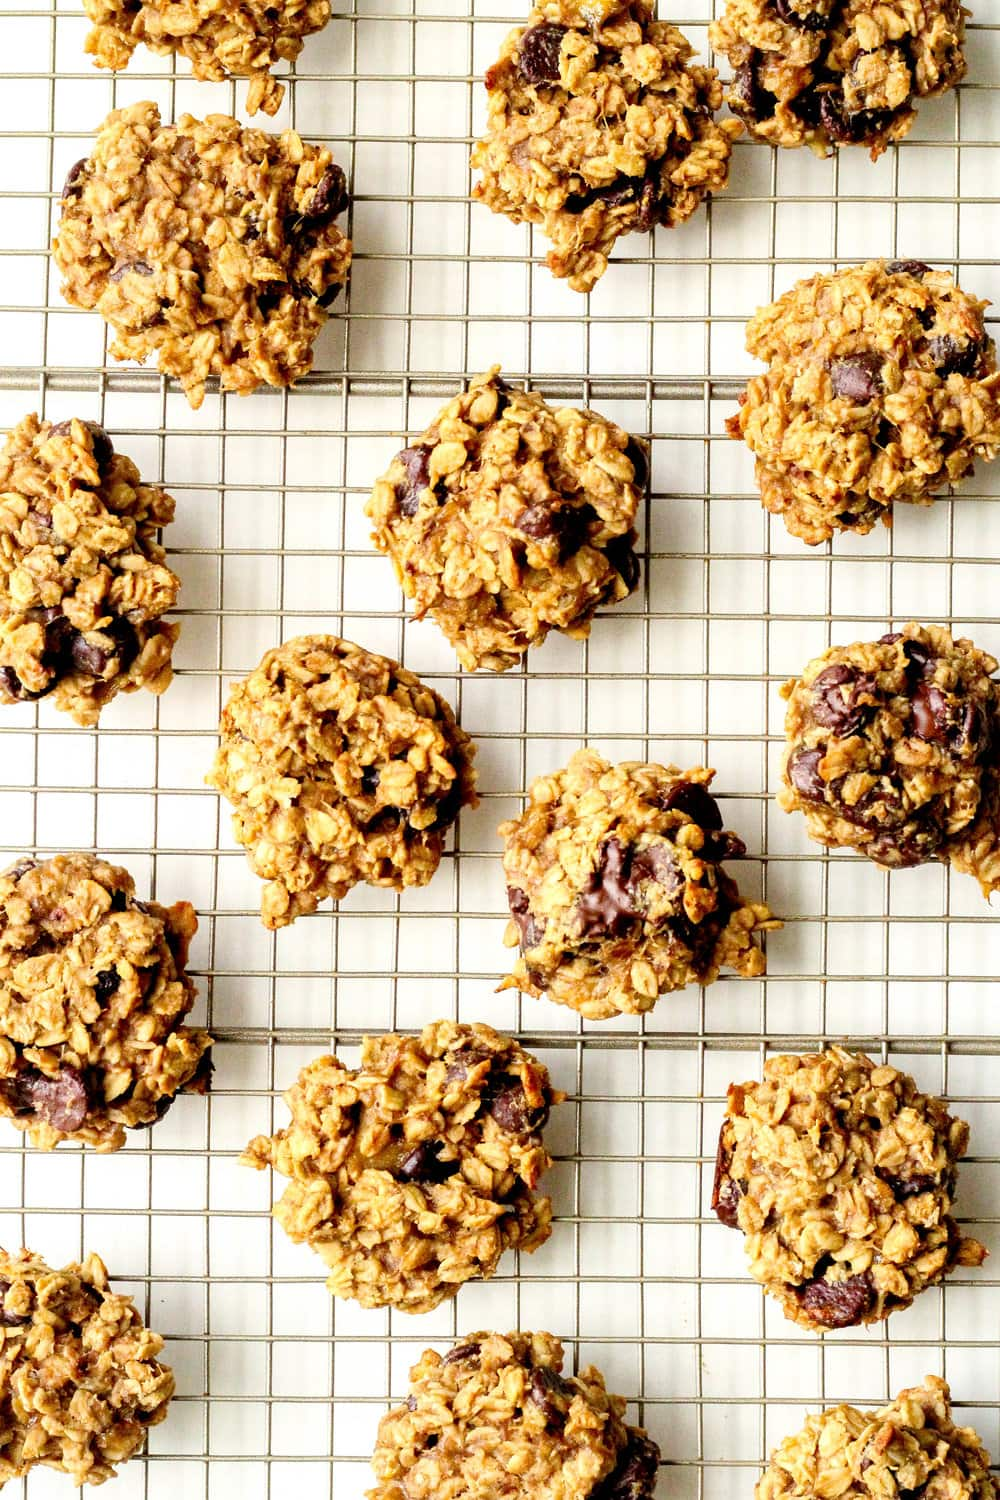 Peanut Butter Banana Chocolate Chip Oatmeal Cookies